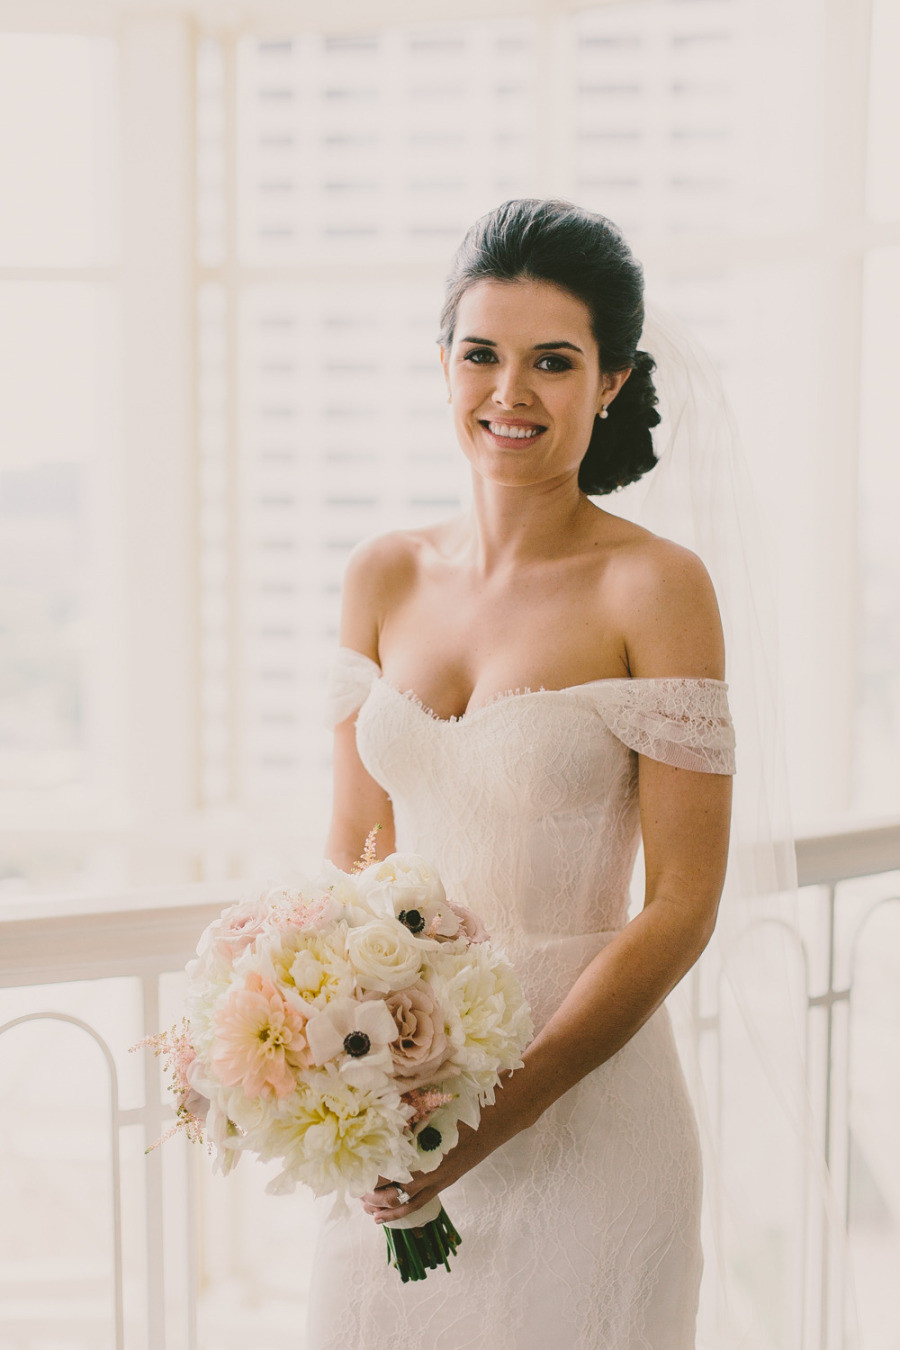 20 Of The Sweetest Off The Shoulder Wedding Dresses